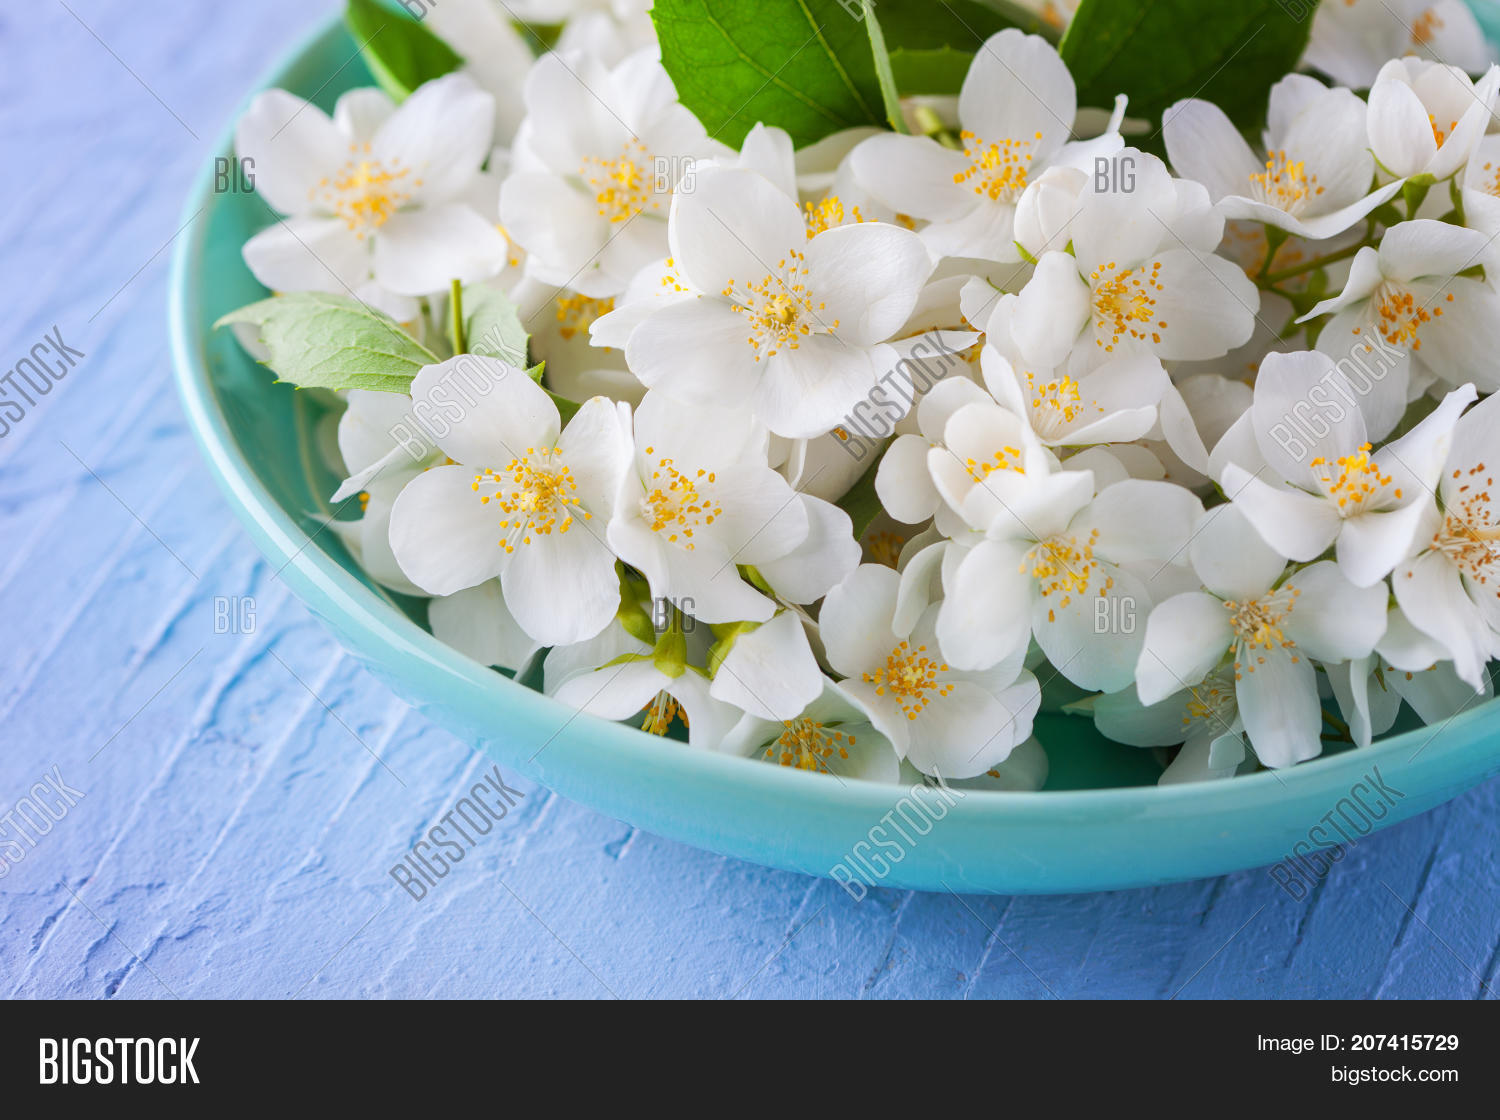 Lots Jasmine Flowers Image Photo Free Trial Bigstock